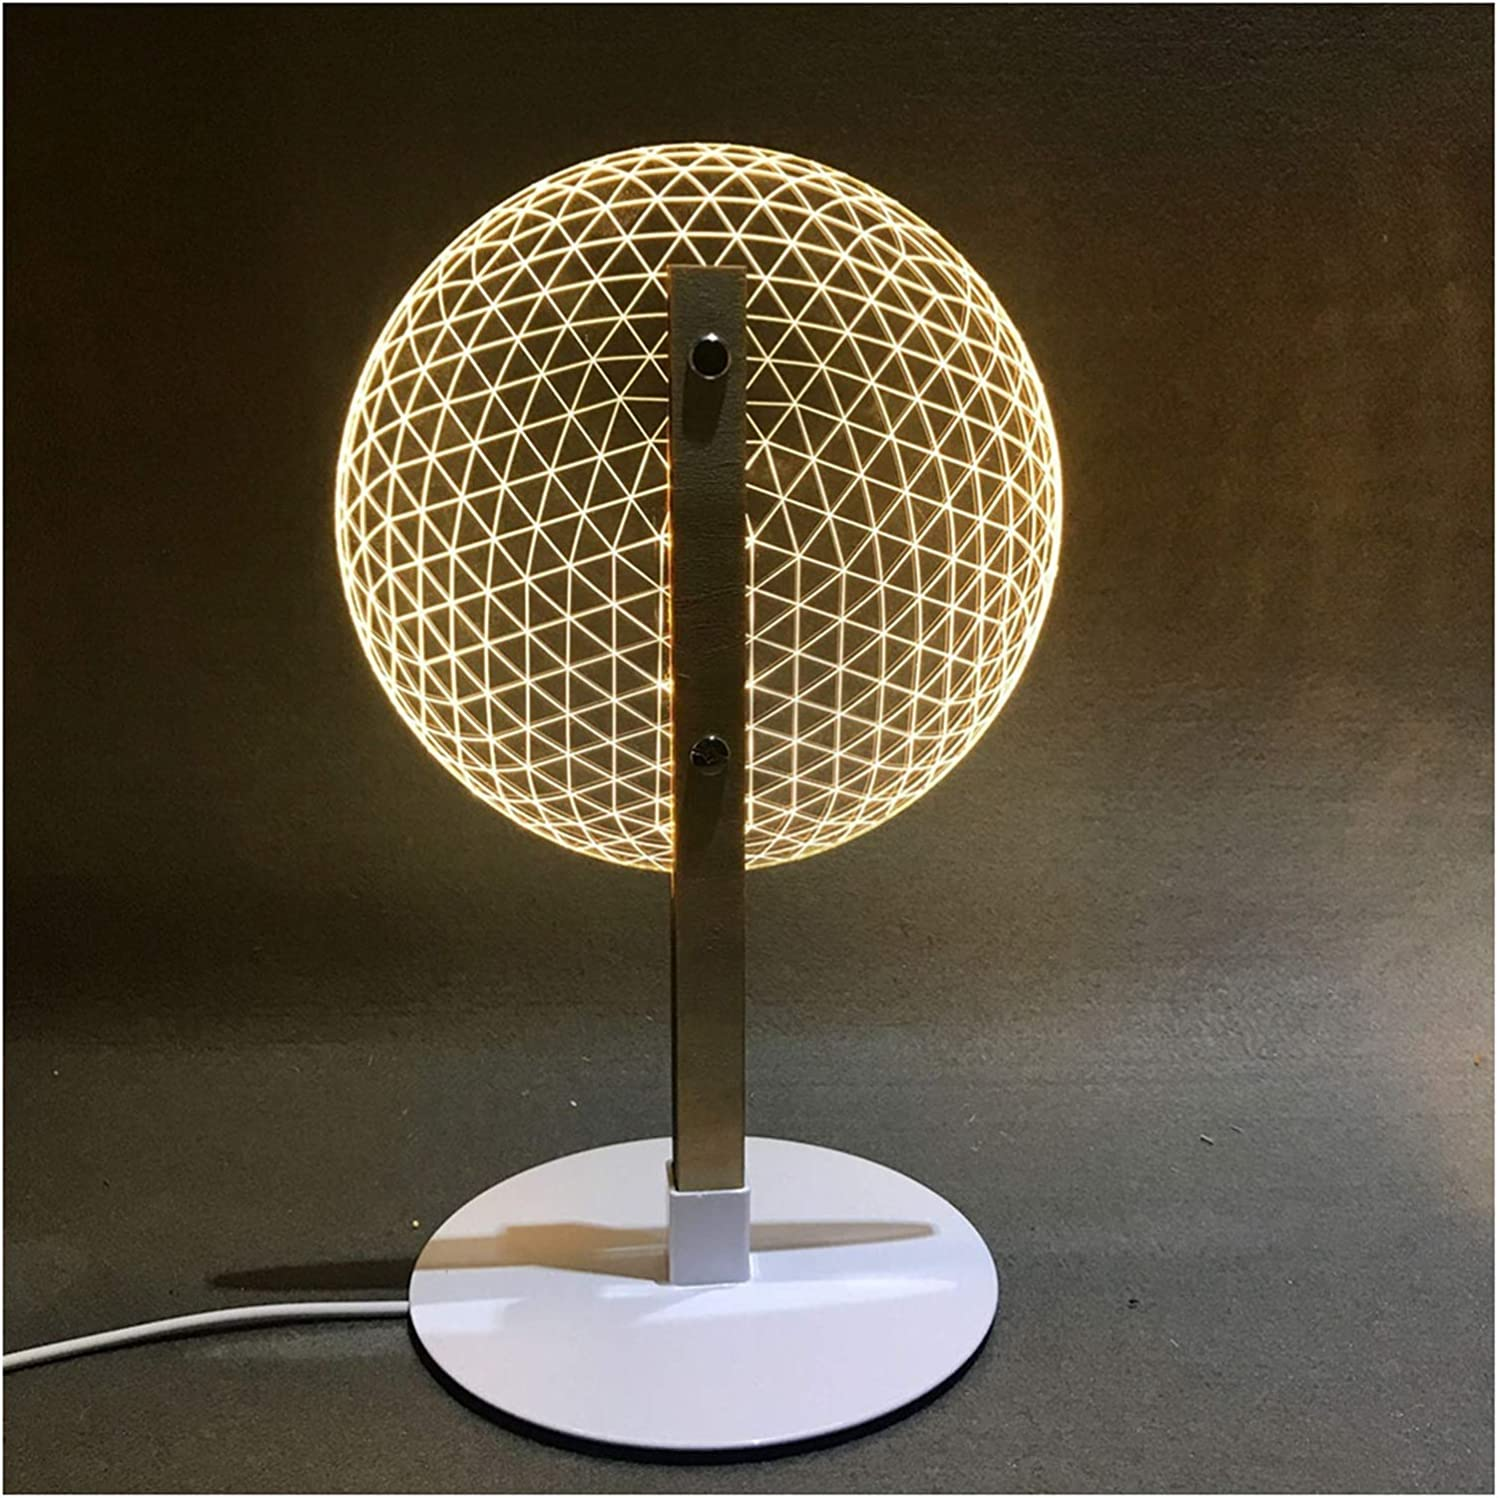 Cash special price CHENPINBH Night Virginia Beach Mall Light 3D Effect Novelty Table Lamp Reading Bloom